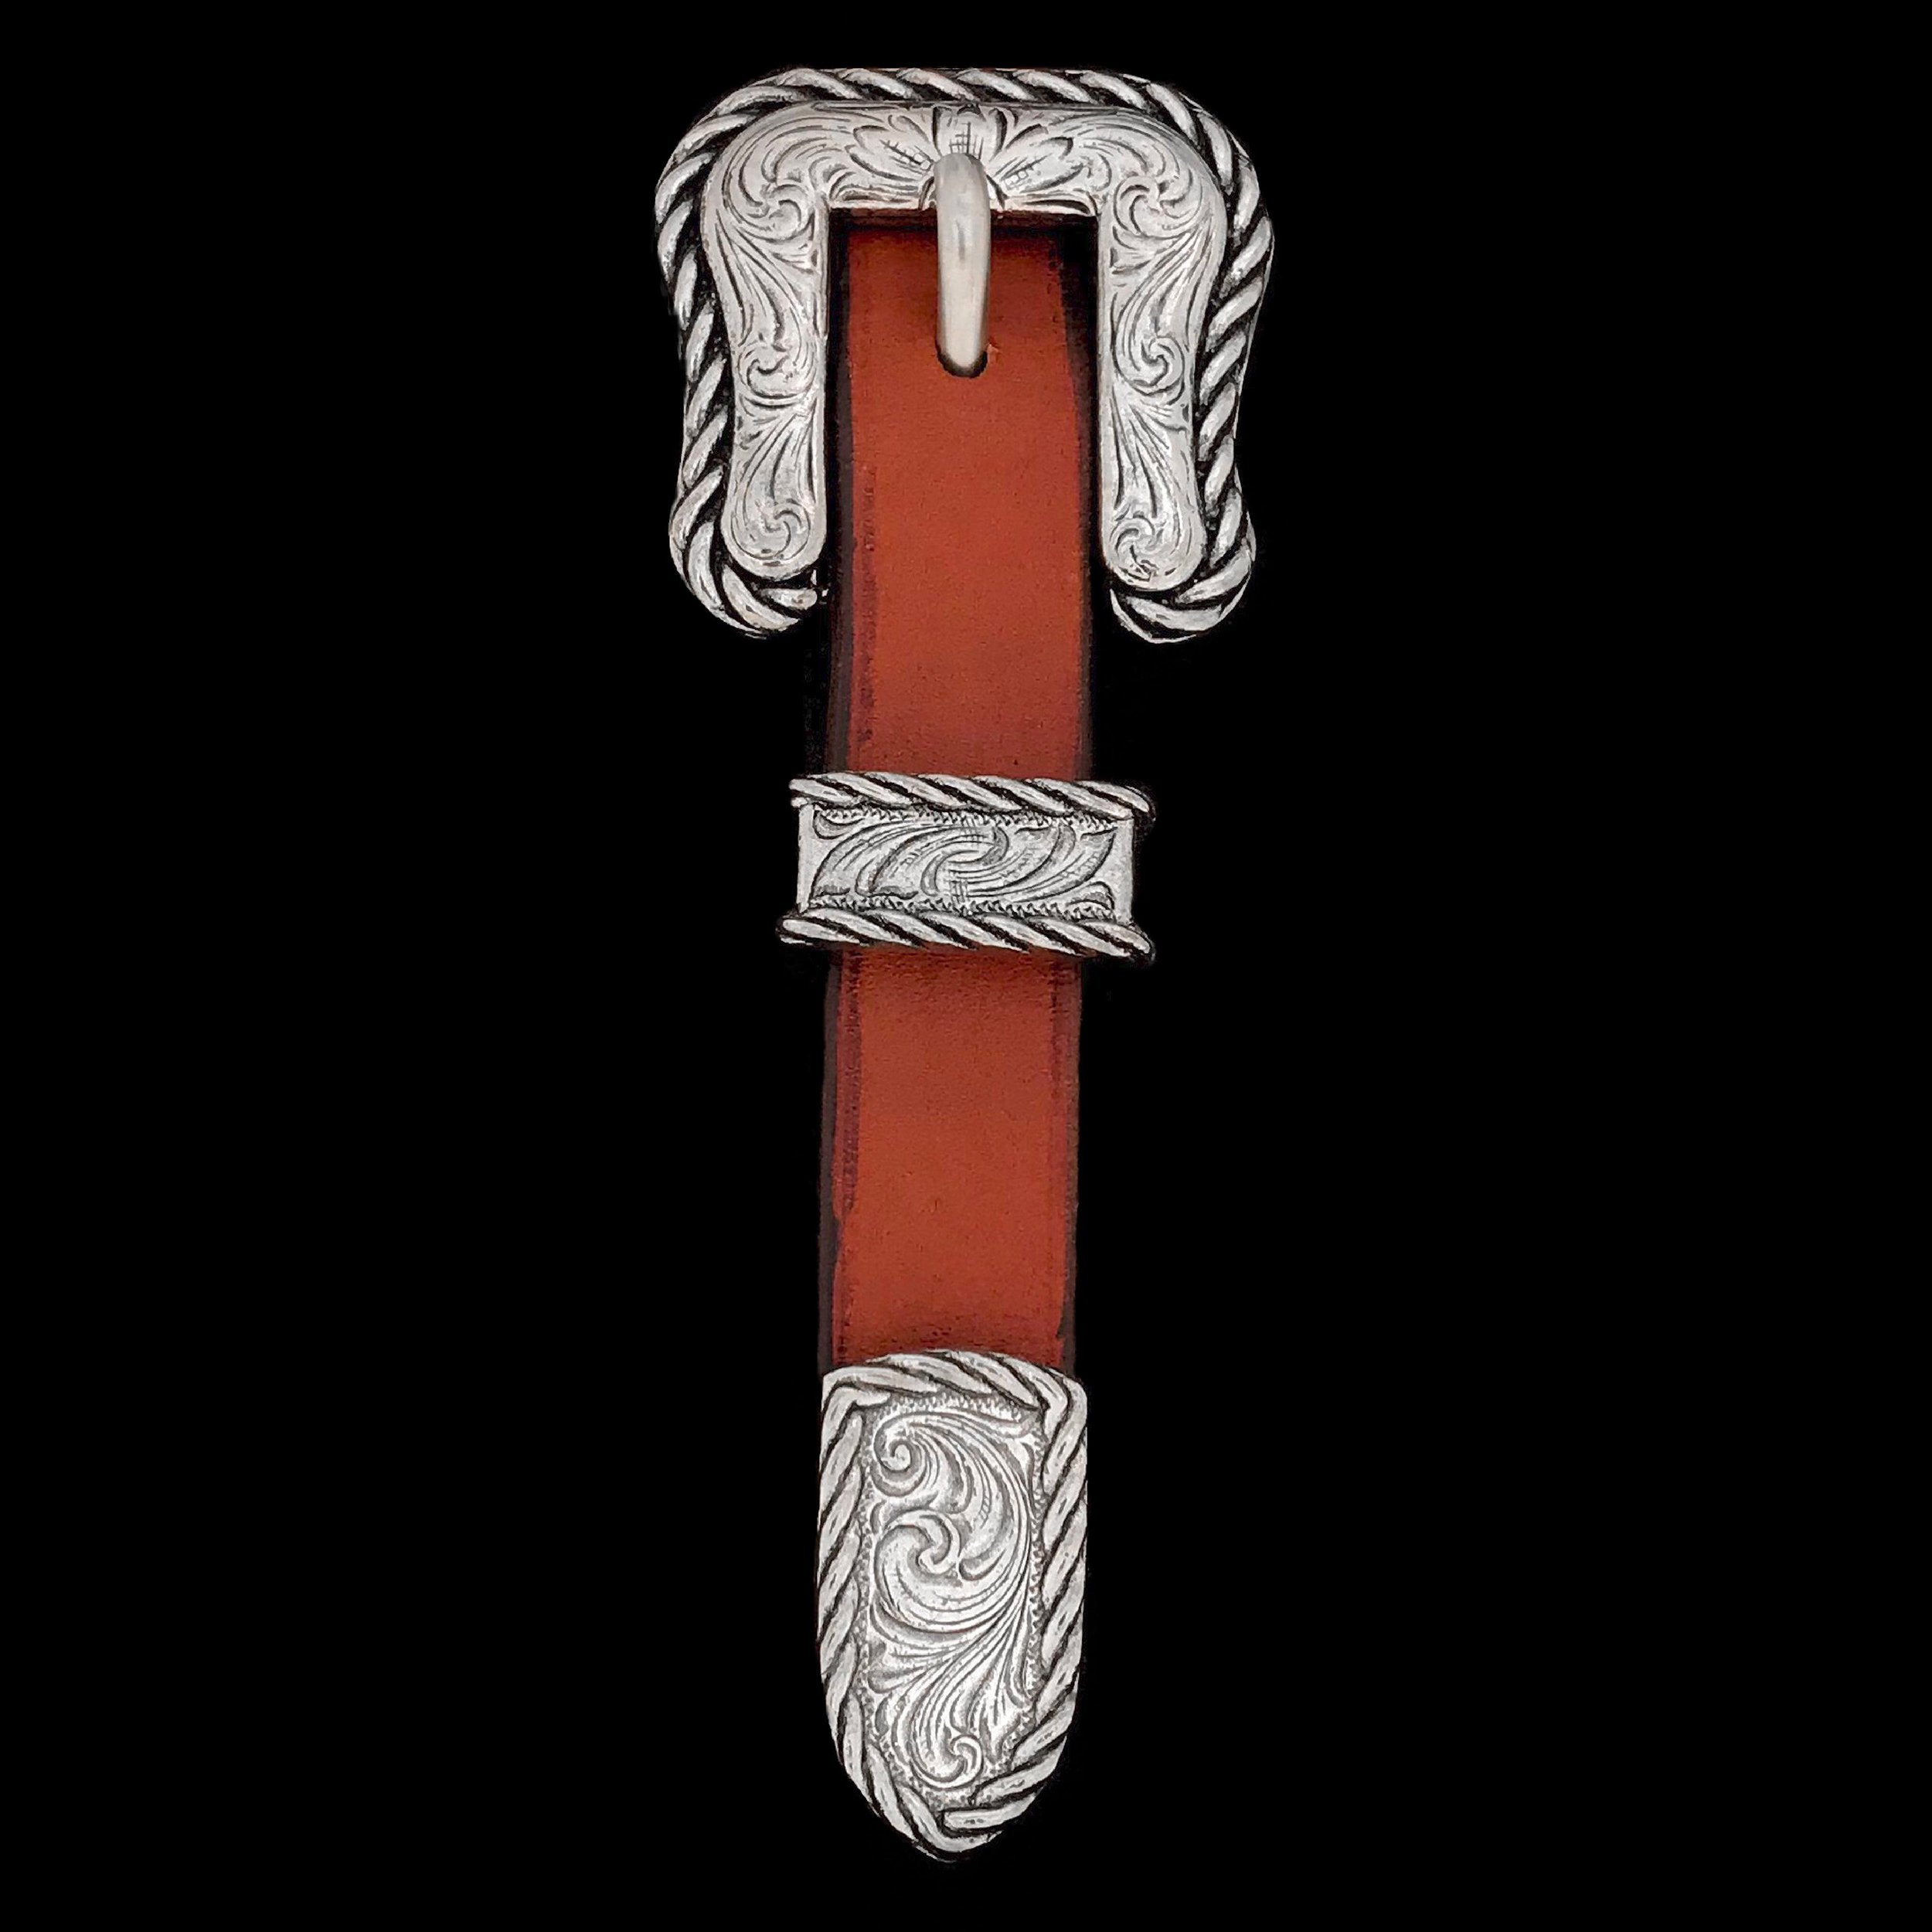 Rockin' Out Square Rope Edge Belt Hardware - 3/4 in